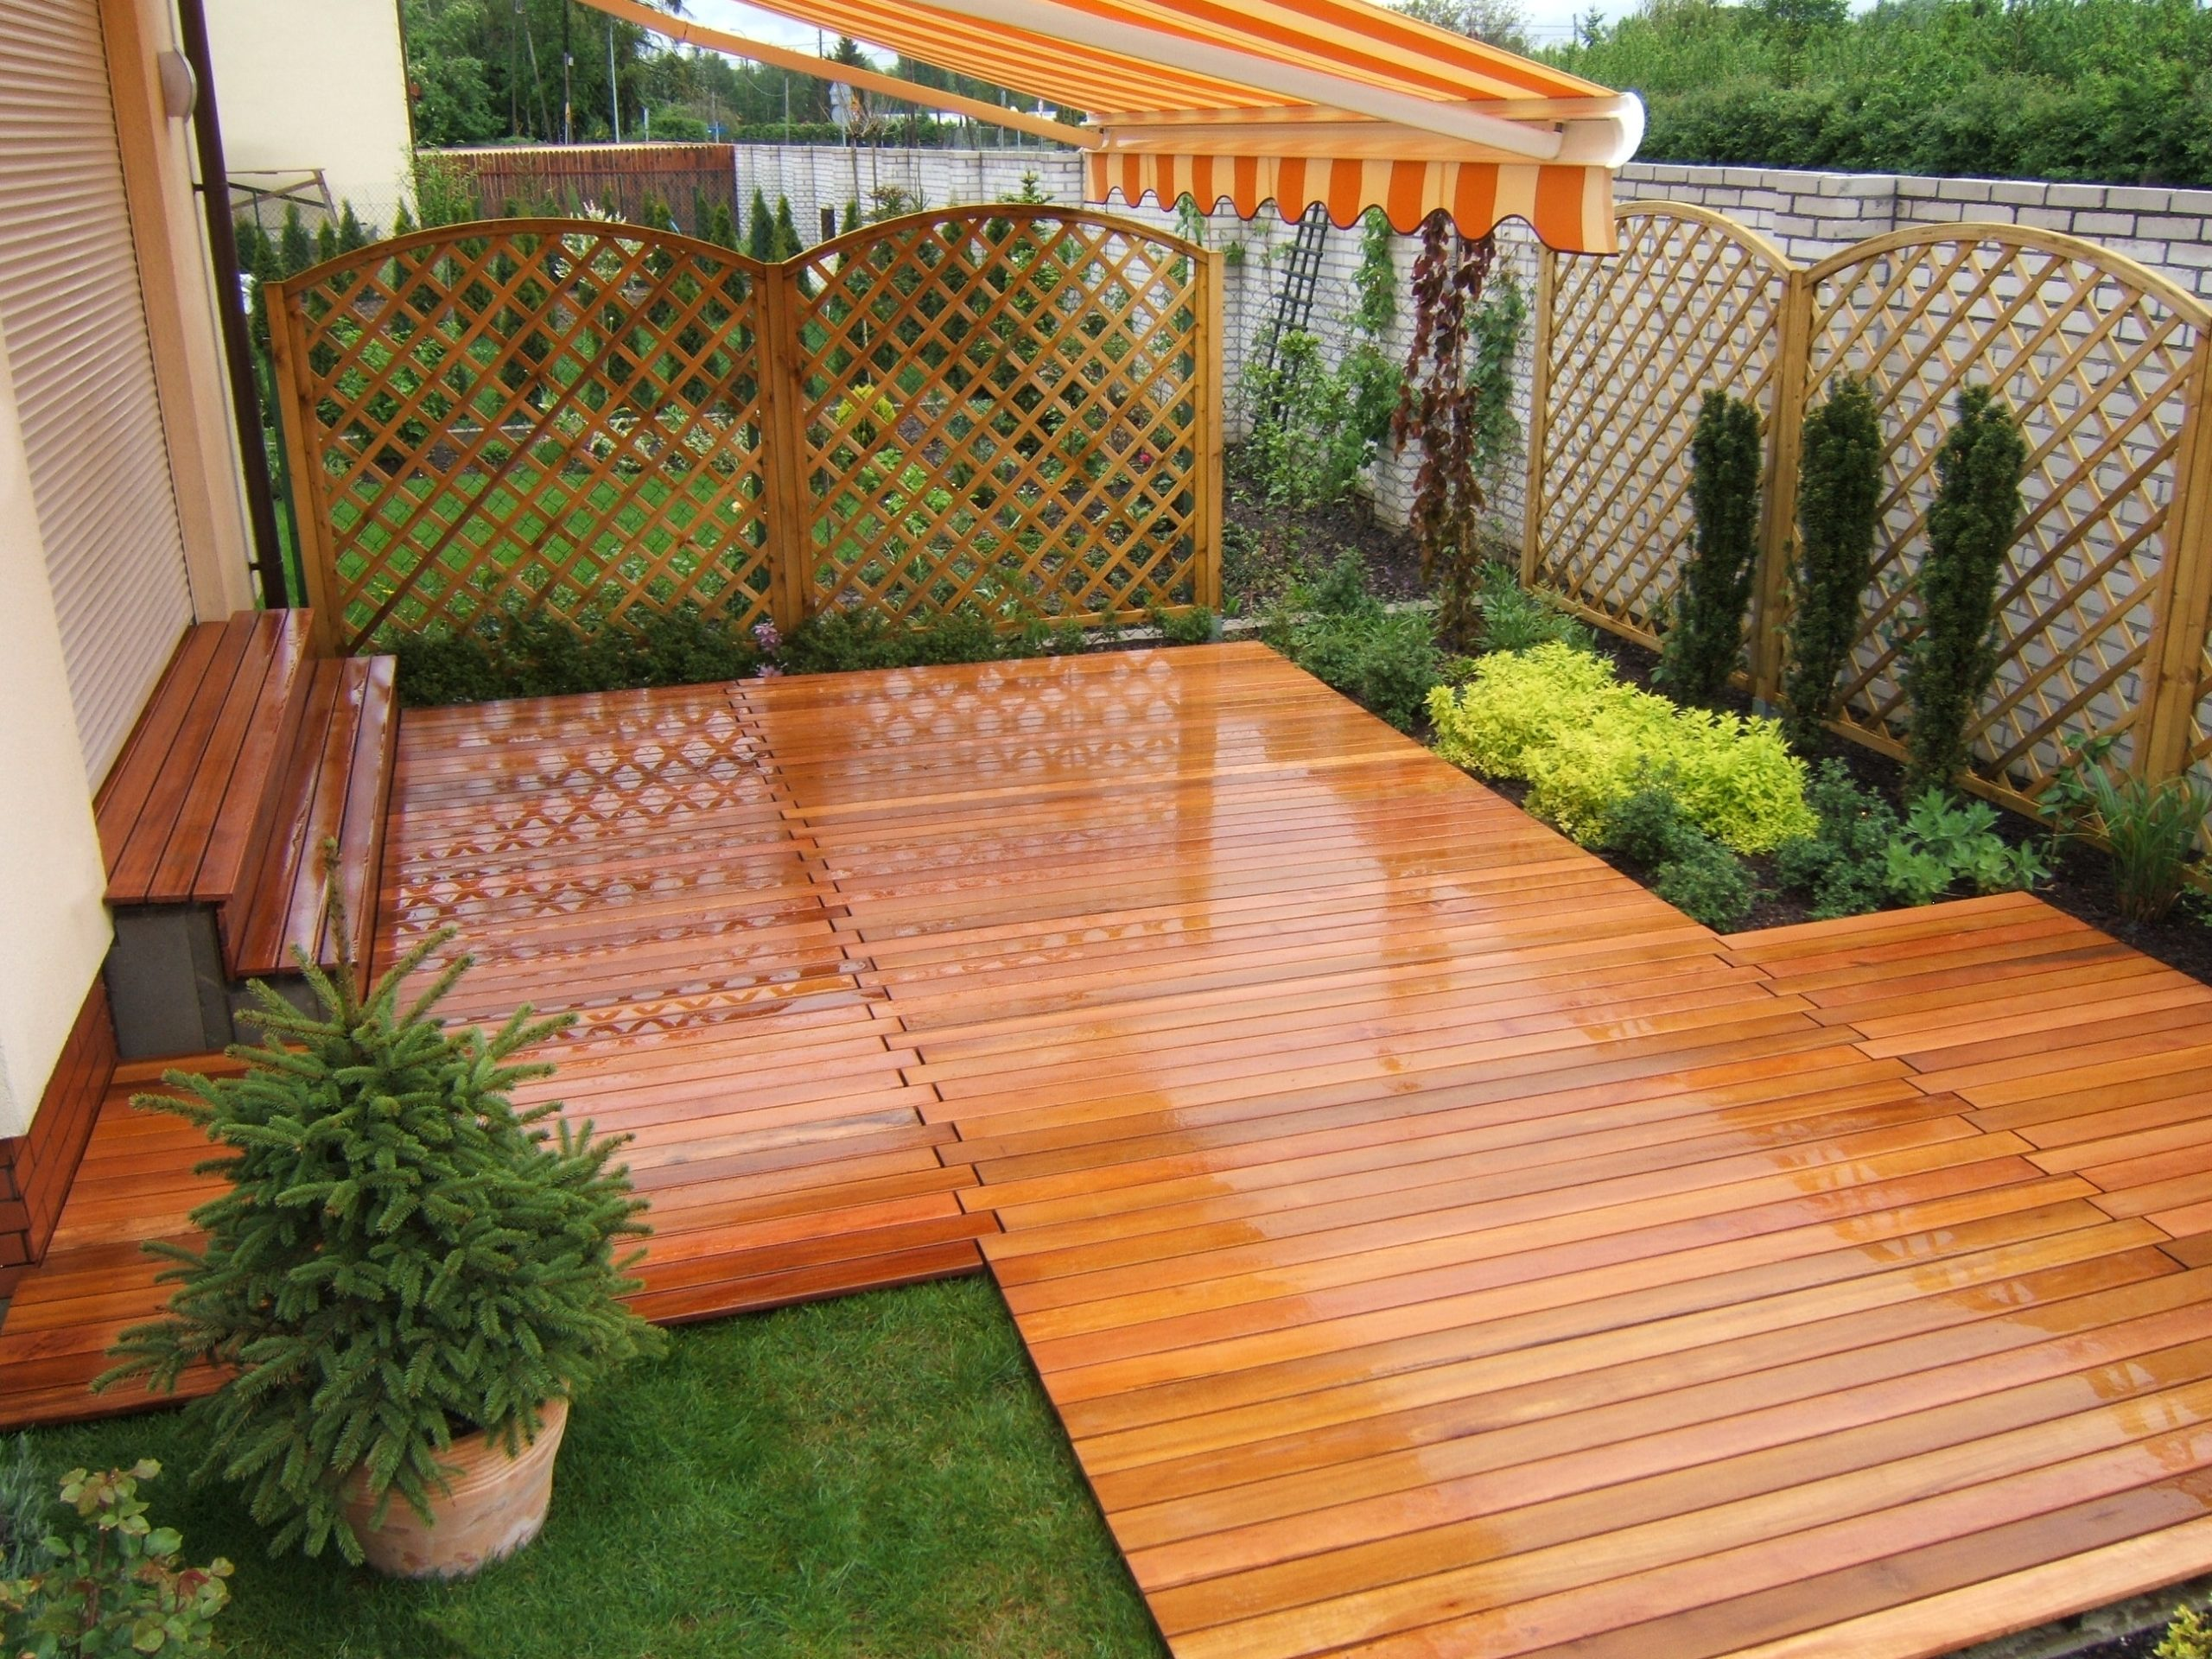 exotic hardwood boards on a ventilated terrace on the ground